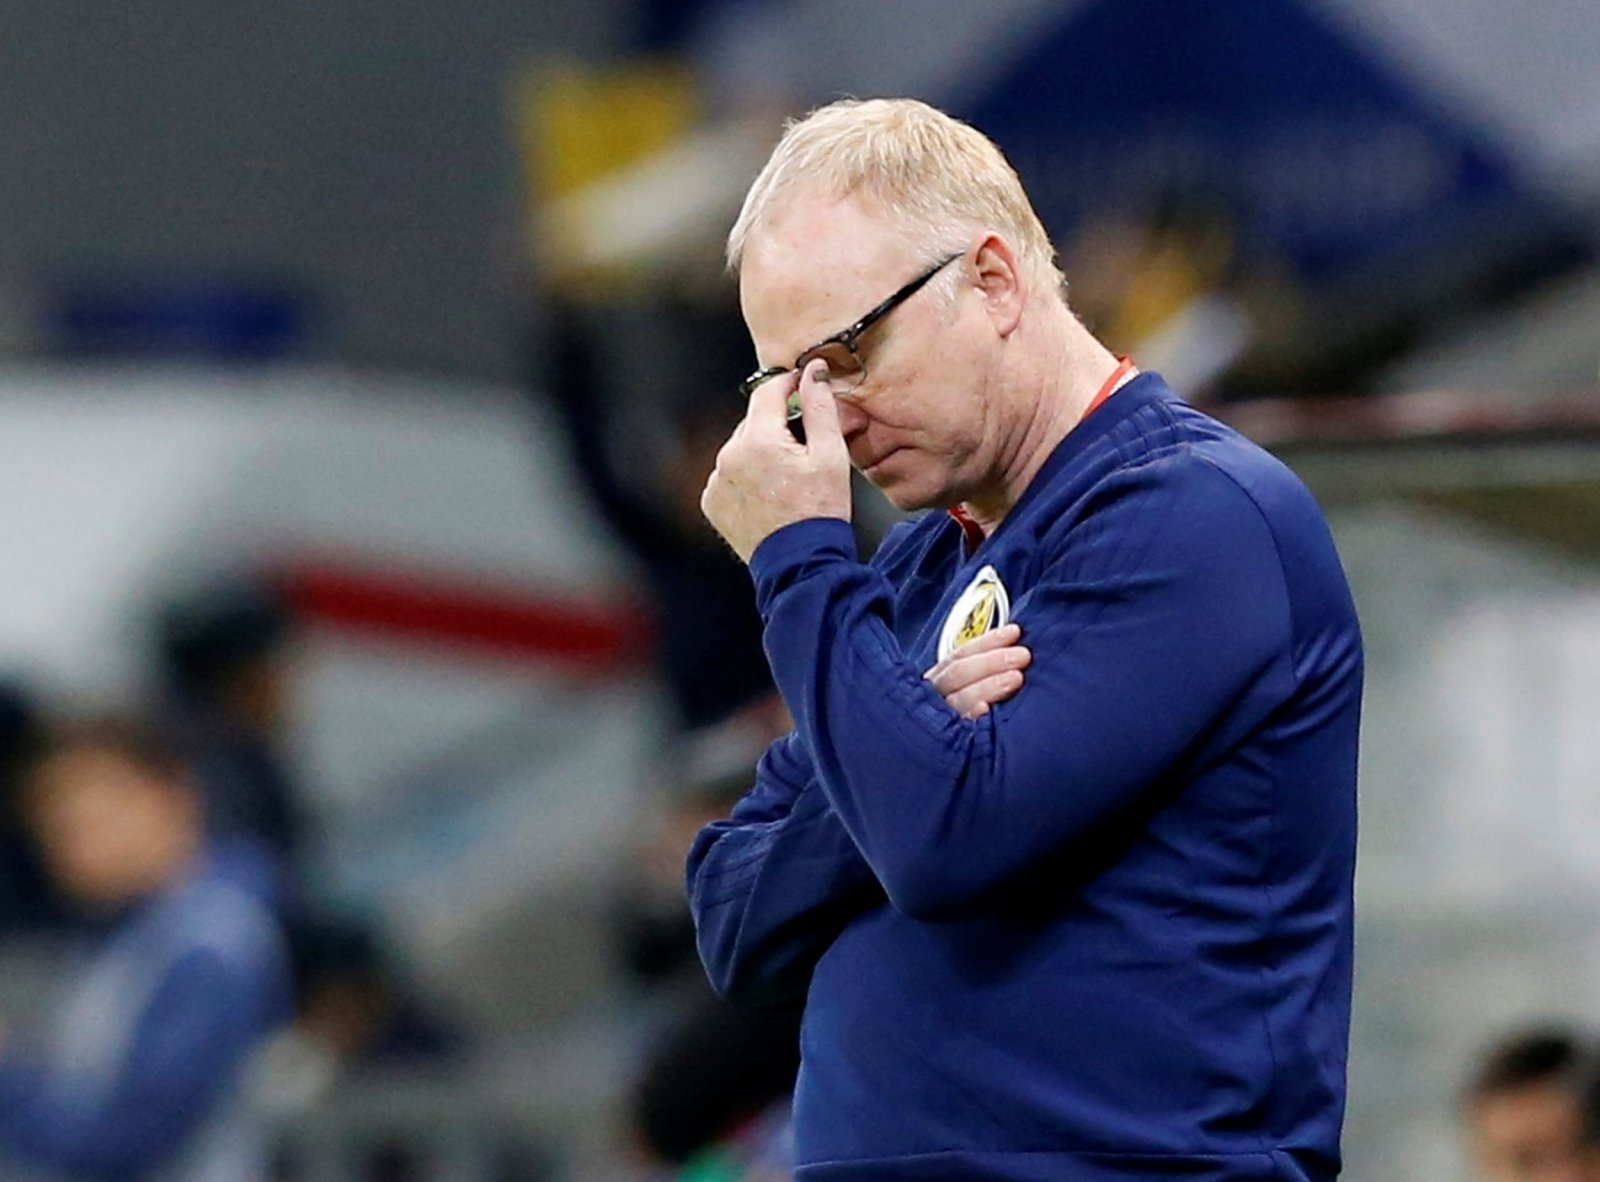 Close shave: Rangers and Alex McLeish